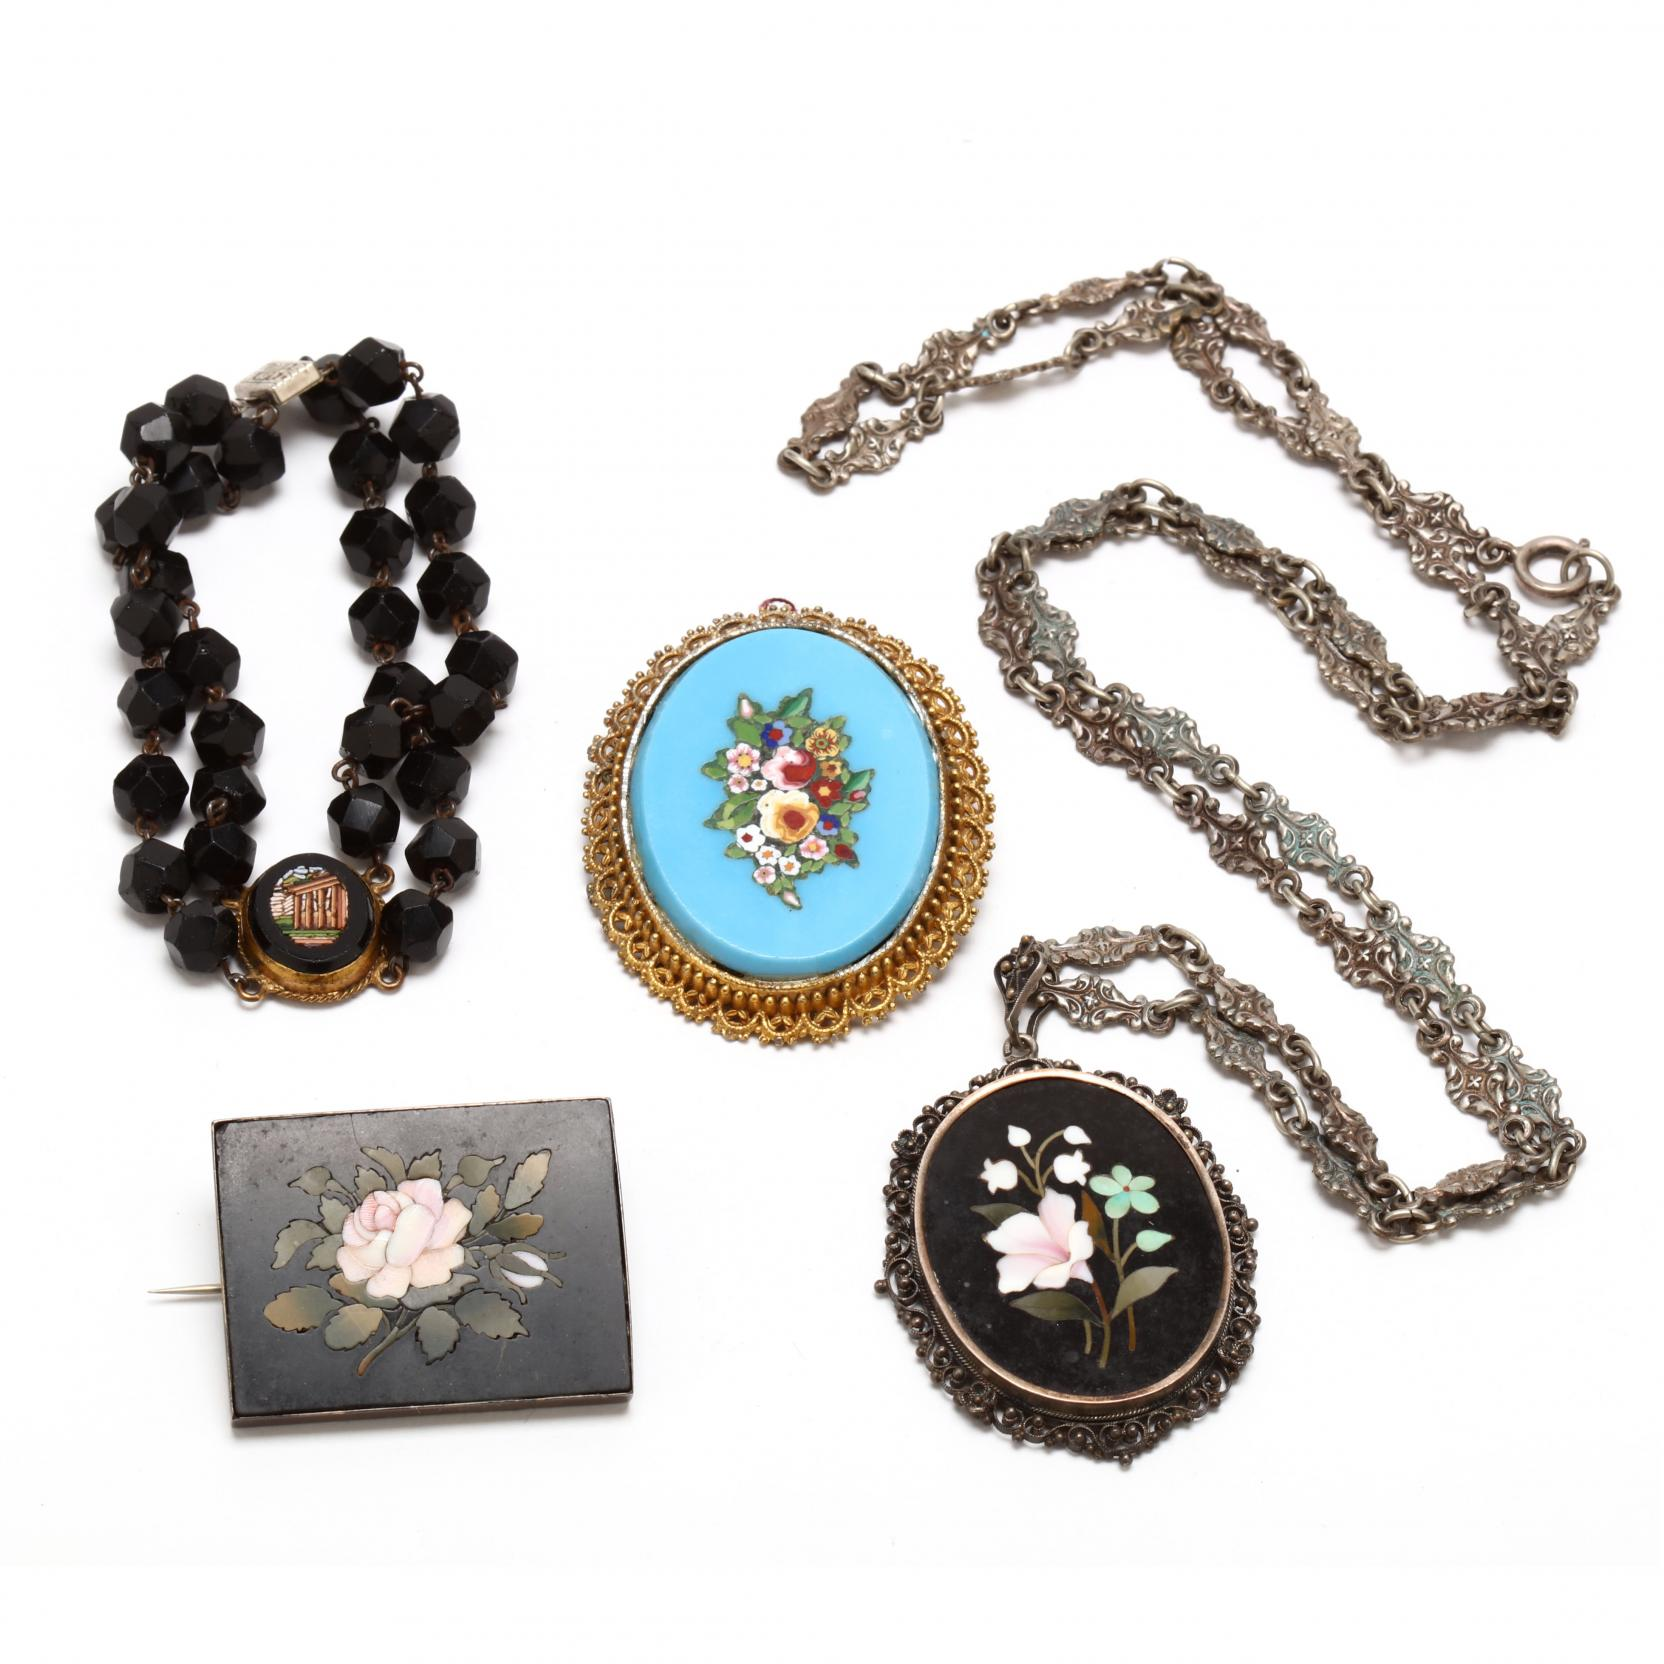 antique-pietra-dura-and-micro-mosaic-jewelry-lot